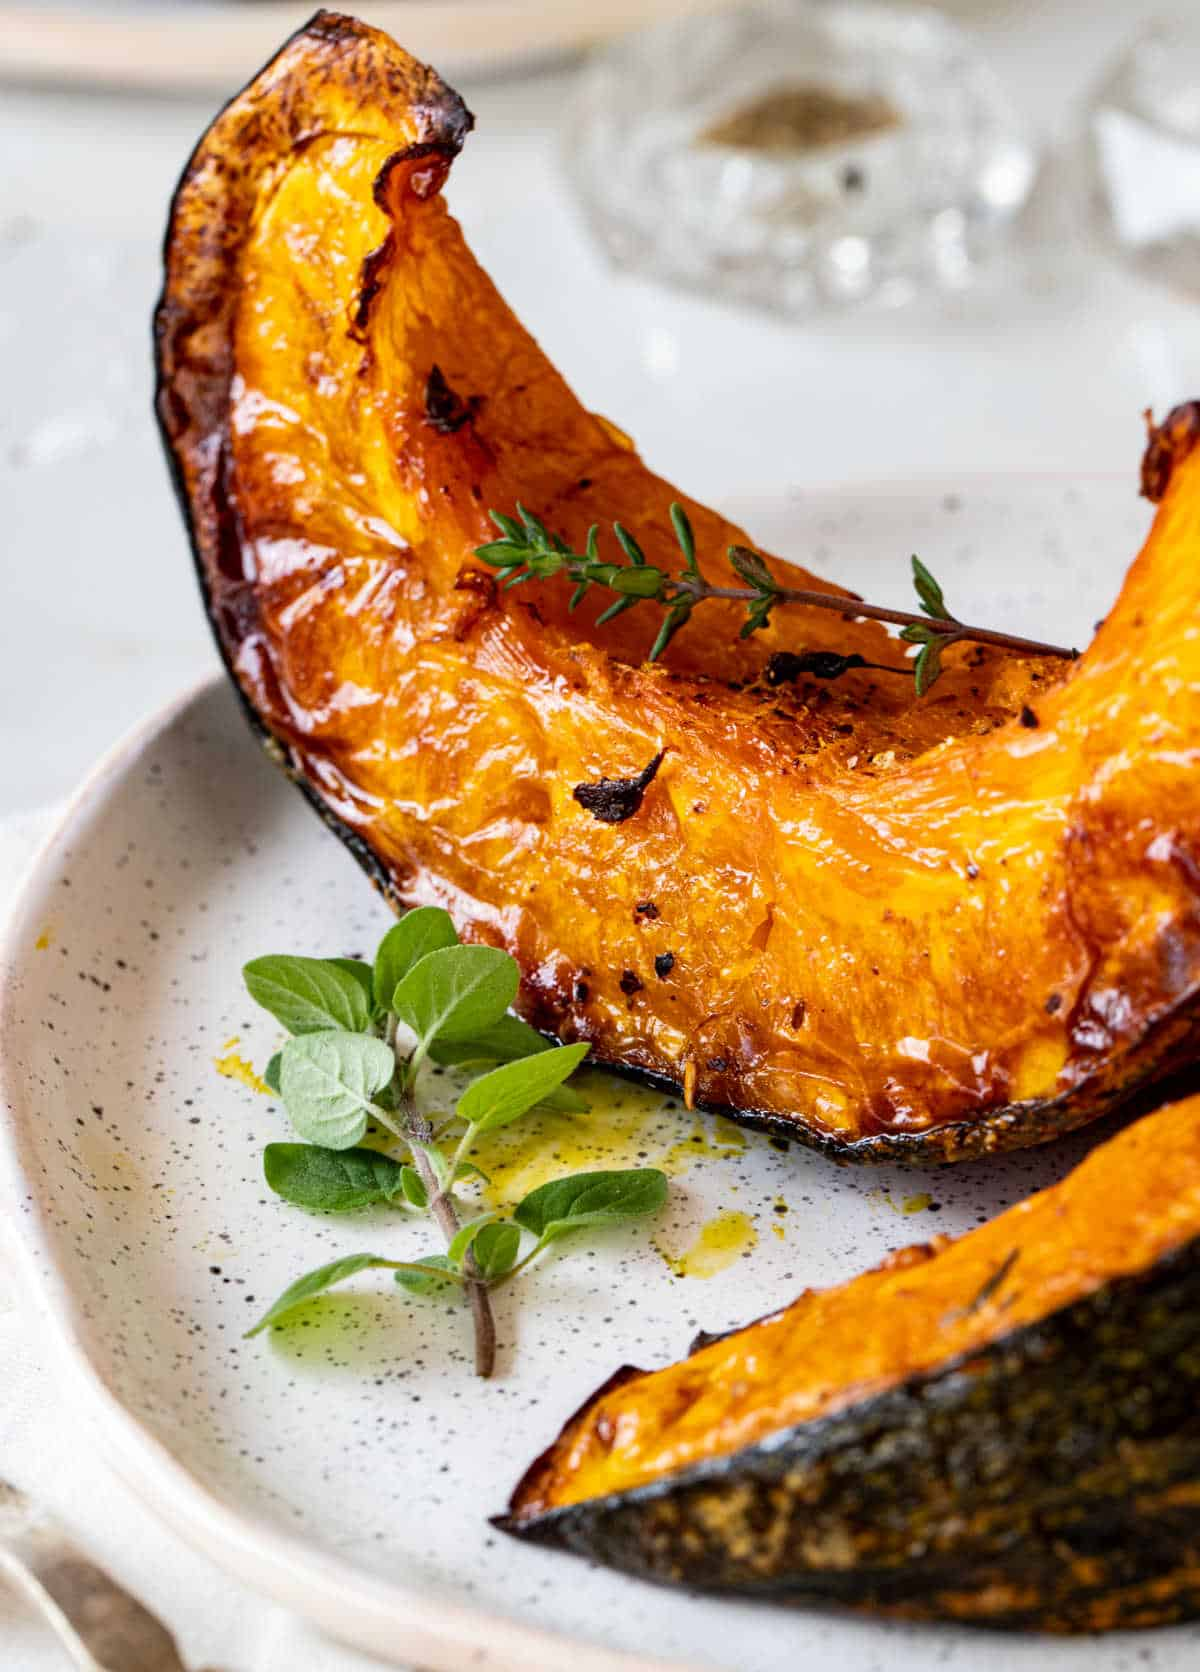 Close up of partial roasted pumpkin wedges on white plate, fresh herbs